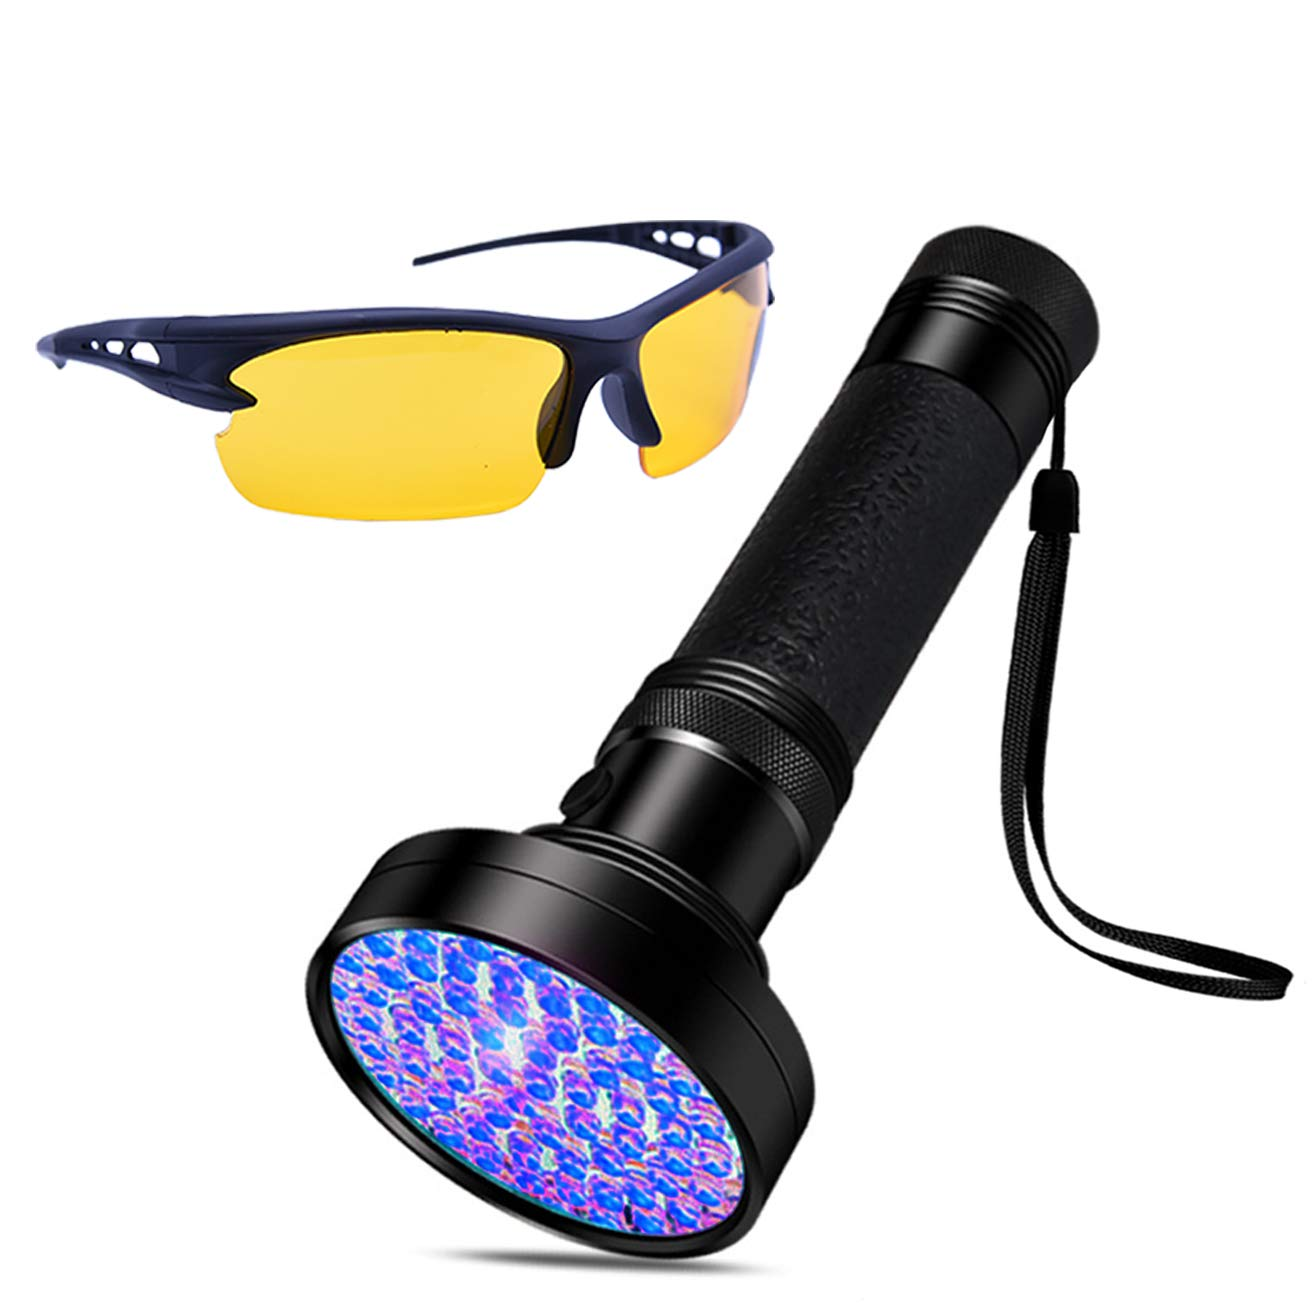 UV Black Light Fashlight 100 LED Handheld Ultraviolet Blacklight with Safety Glasses for Pet Urine Stains Fluorescent Agent Bed Bug Scorpions Detection by HANZE (Image #1)